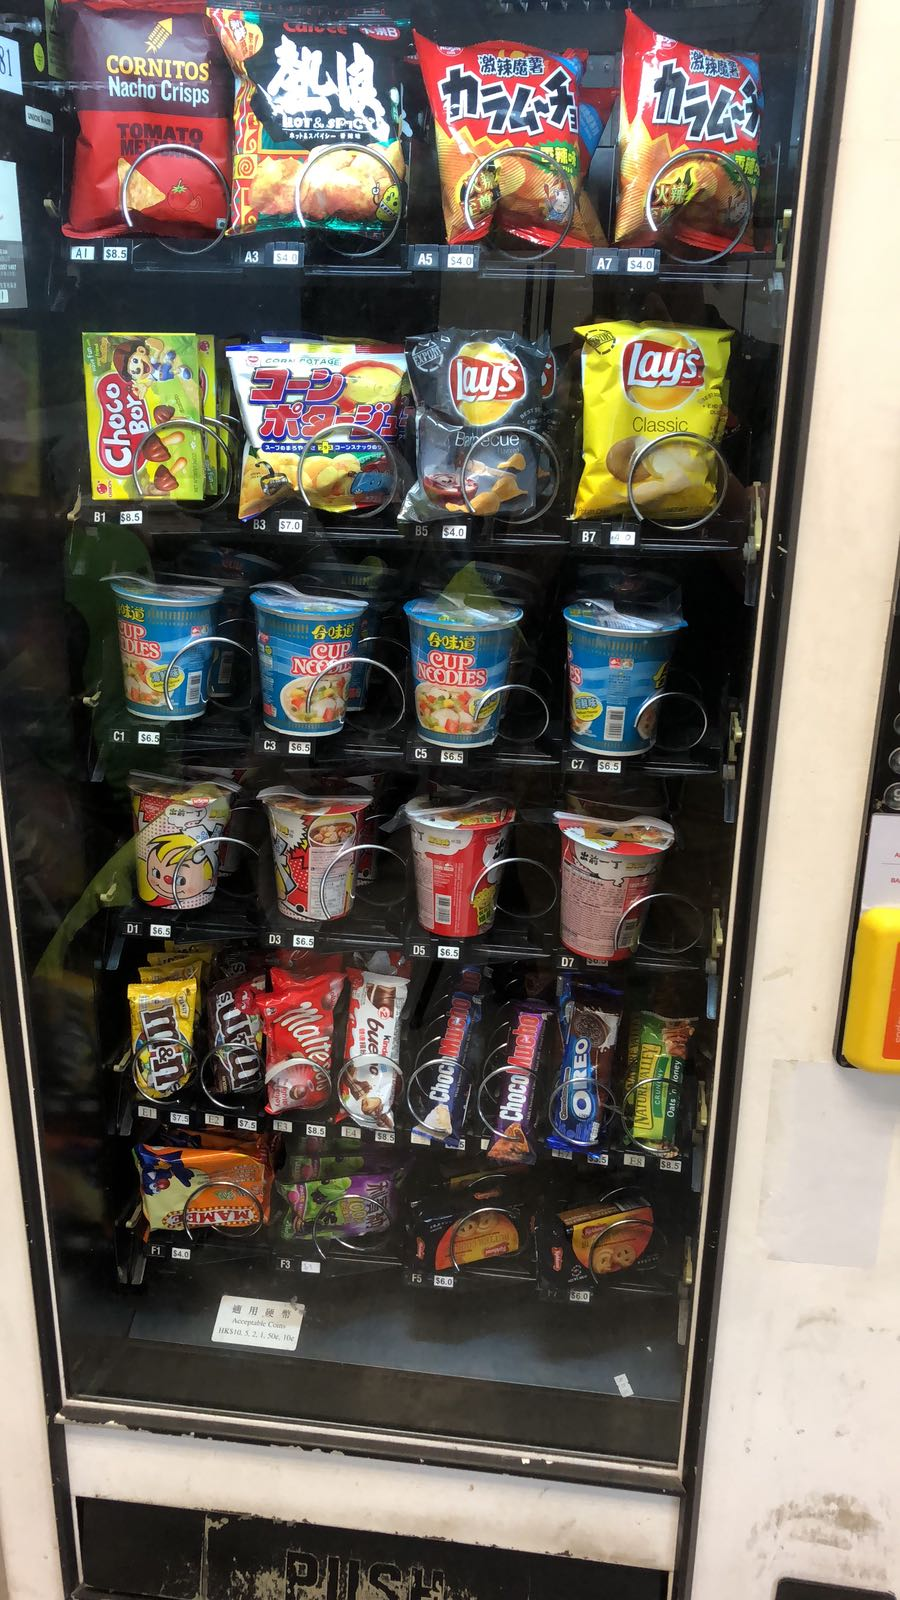 Freshup, vending machine hk, interactive, food, beverage, smart retail, convenient, vending services, professional, corporations, Wellcome, cup noodles